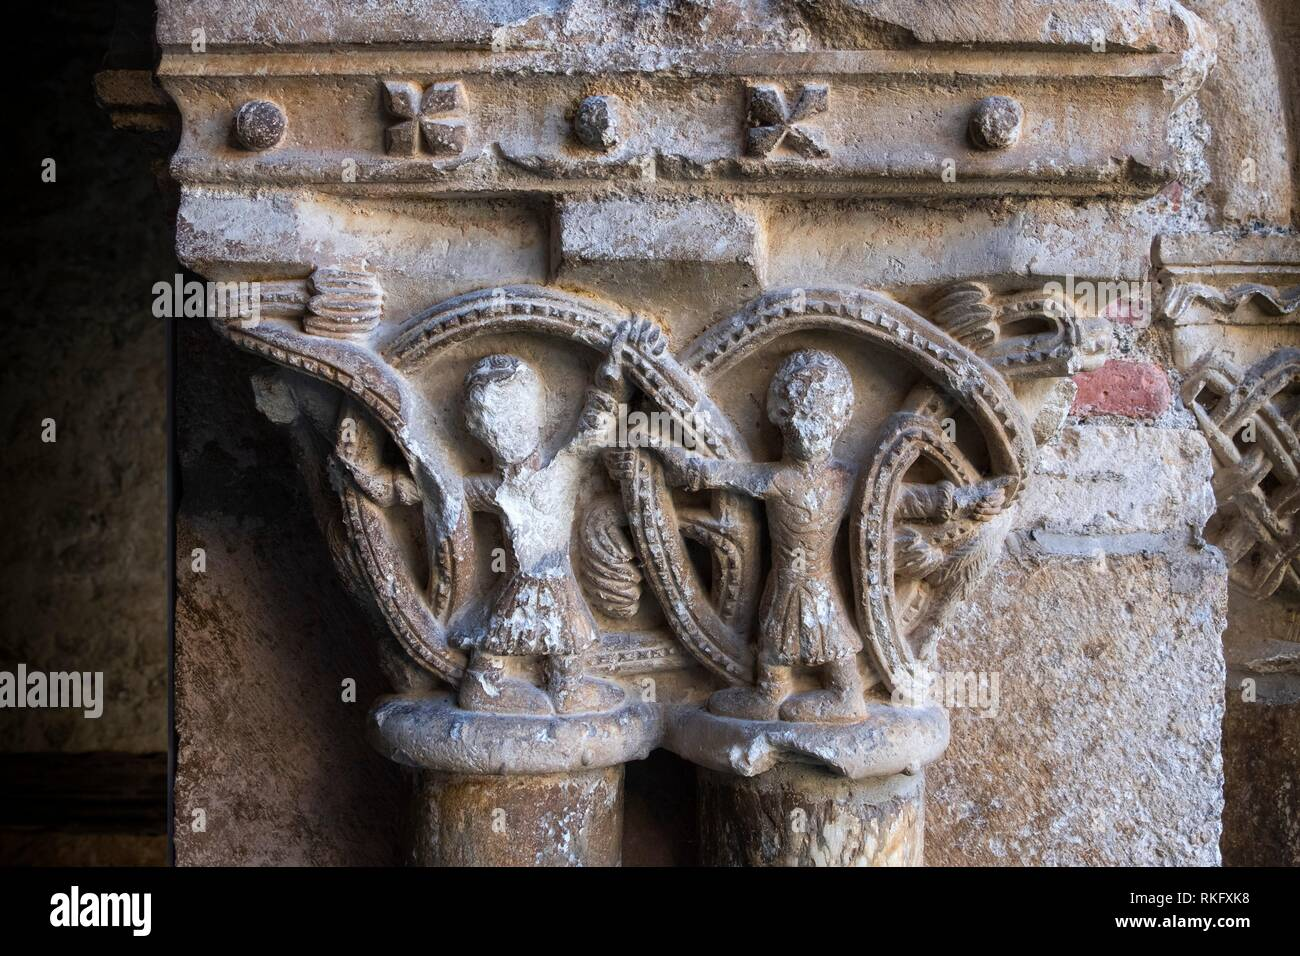 France, Occitanie, Arriege, detail of a column of the cloister (11th Century) at the cathedrale ar Saint Ligier. - Stock Image